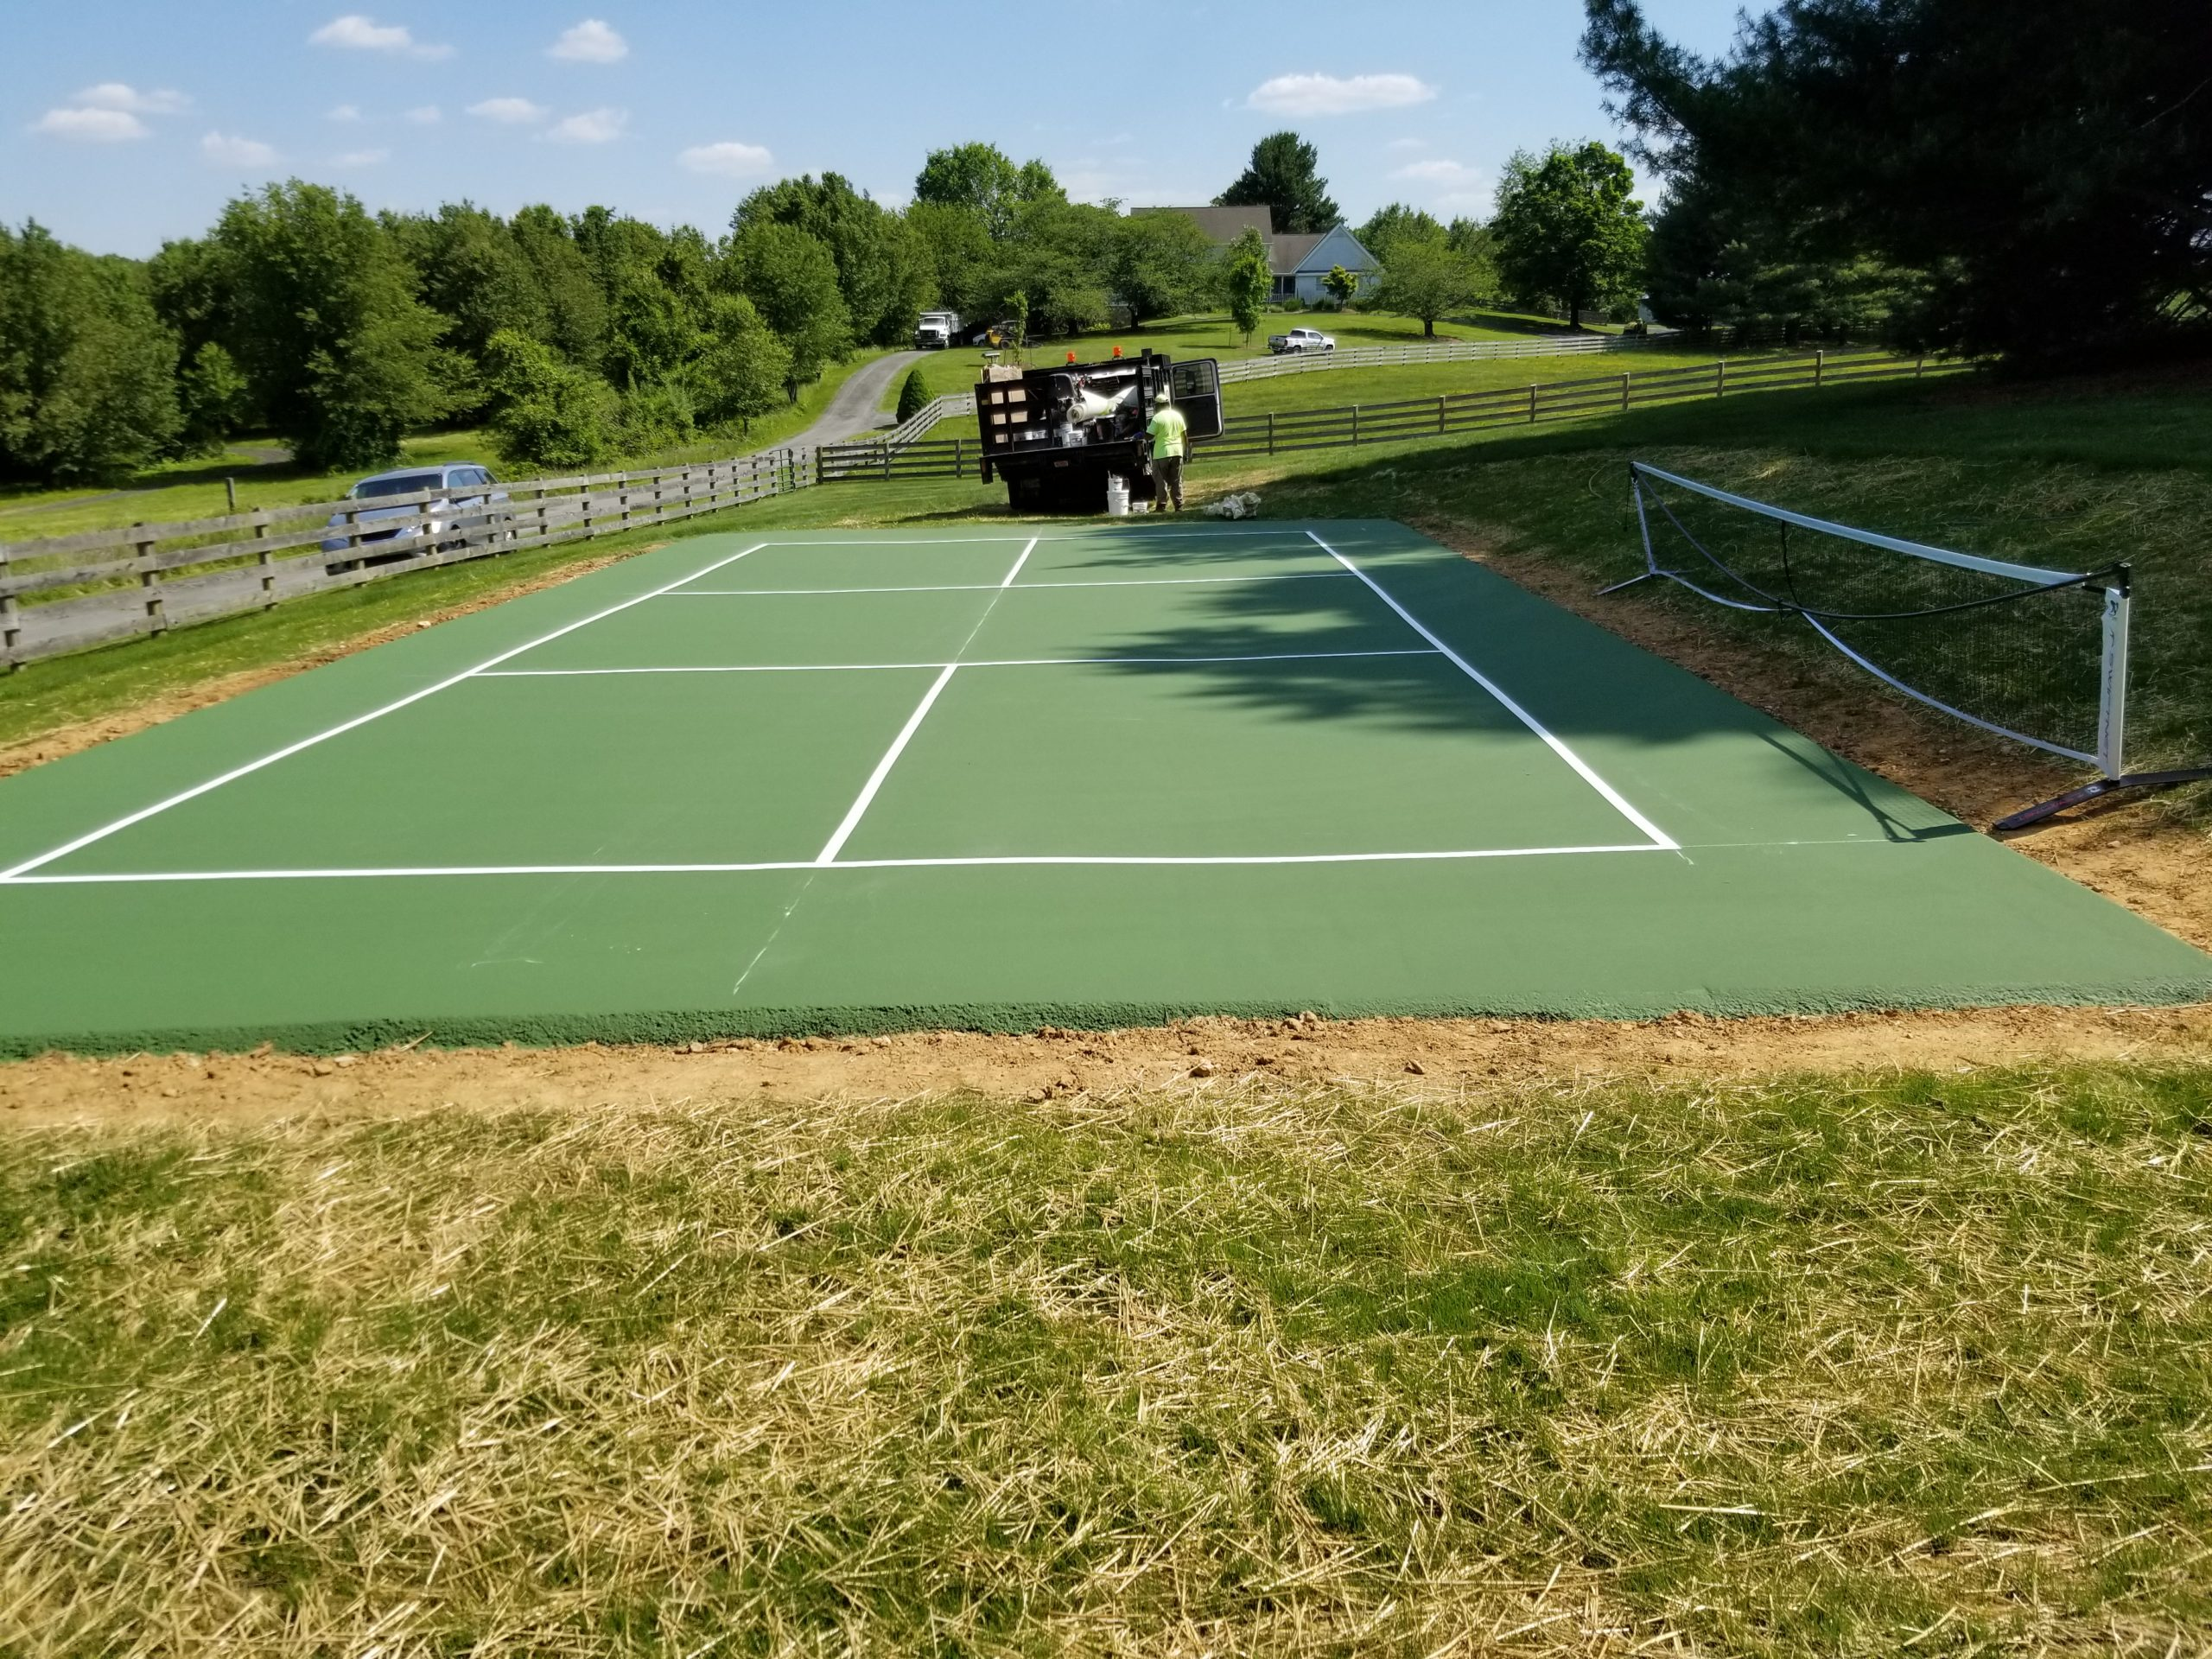 What Is a Pickleball Court?